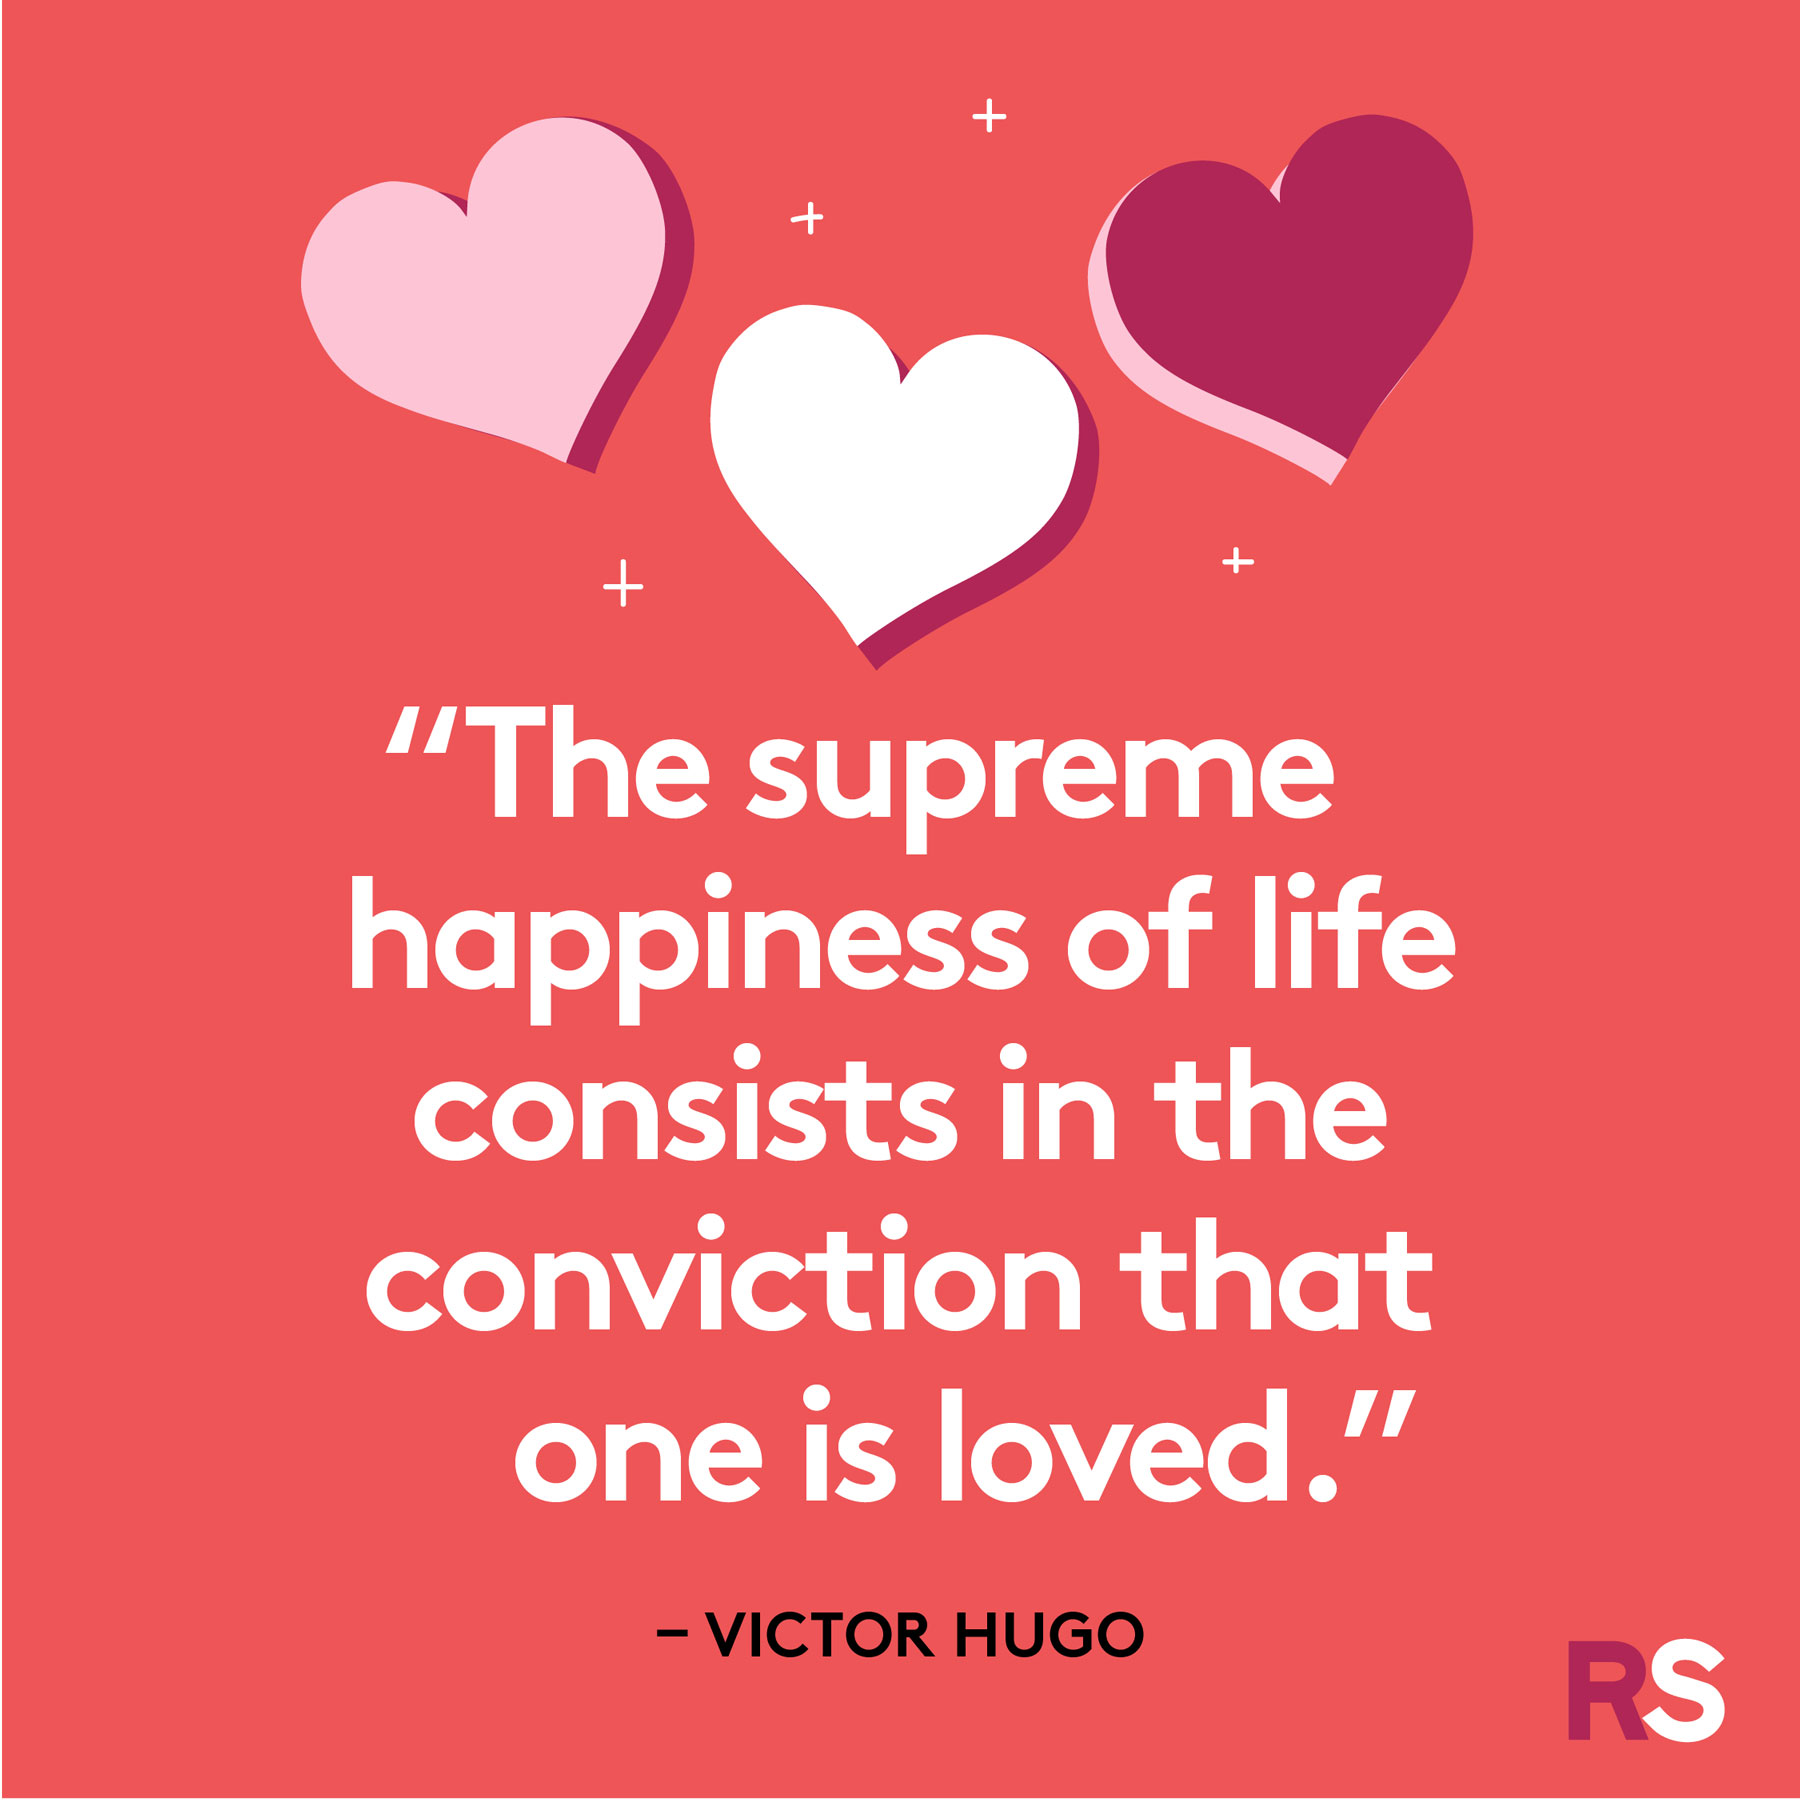 Love quotes, quotes about love - Victor Hugo